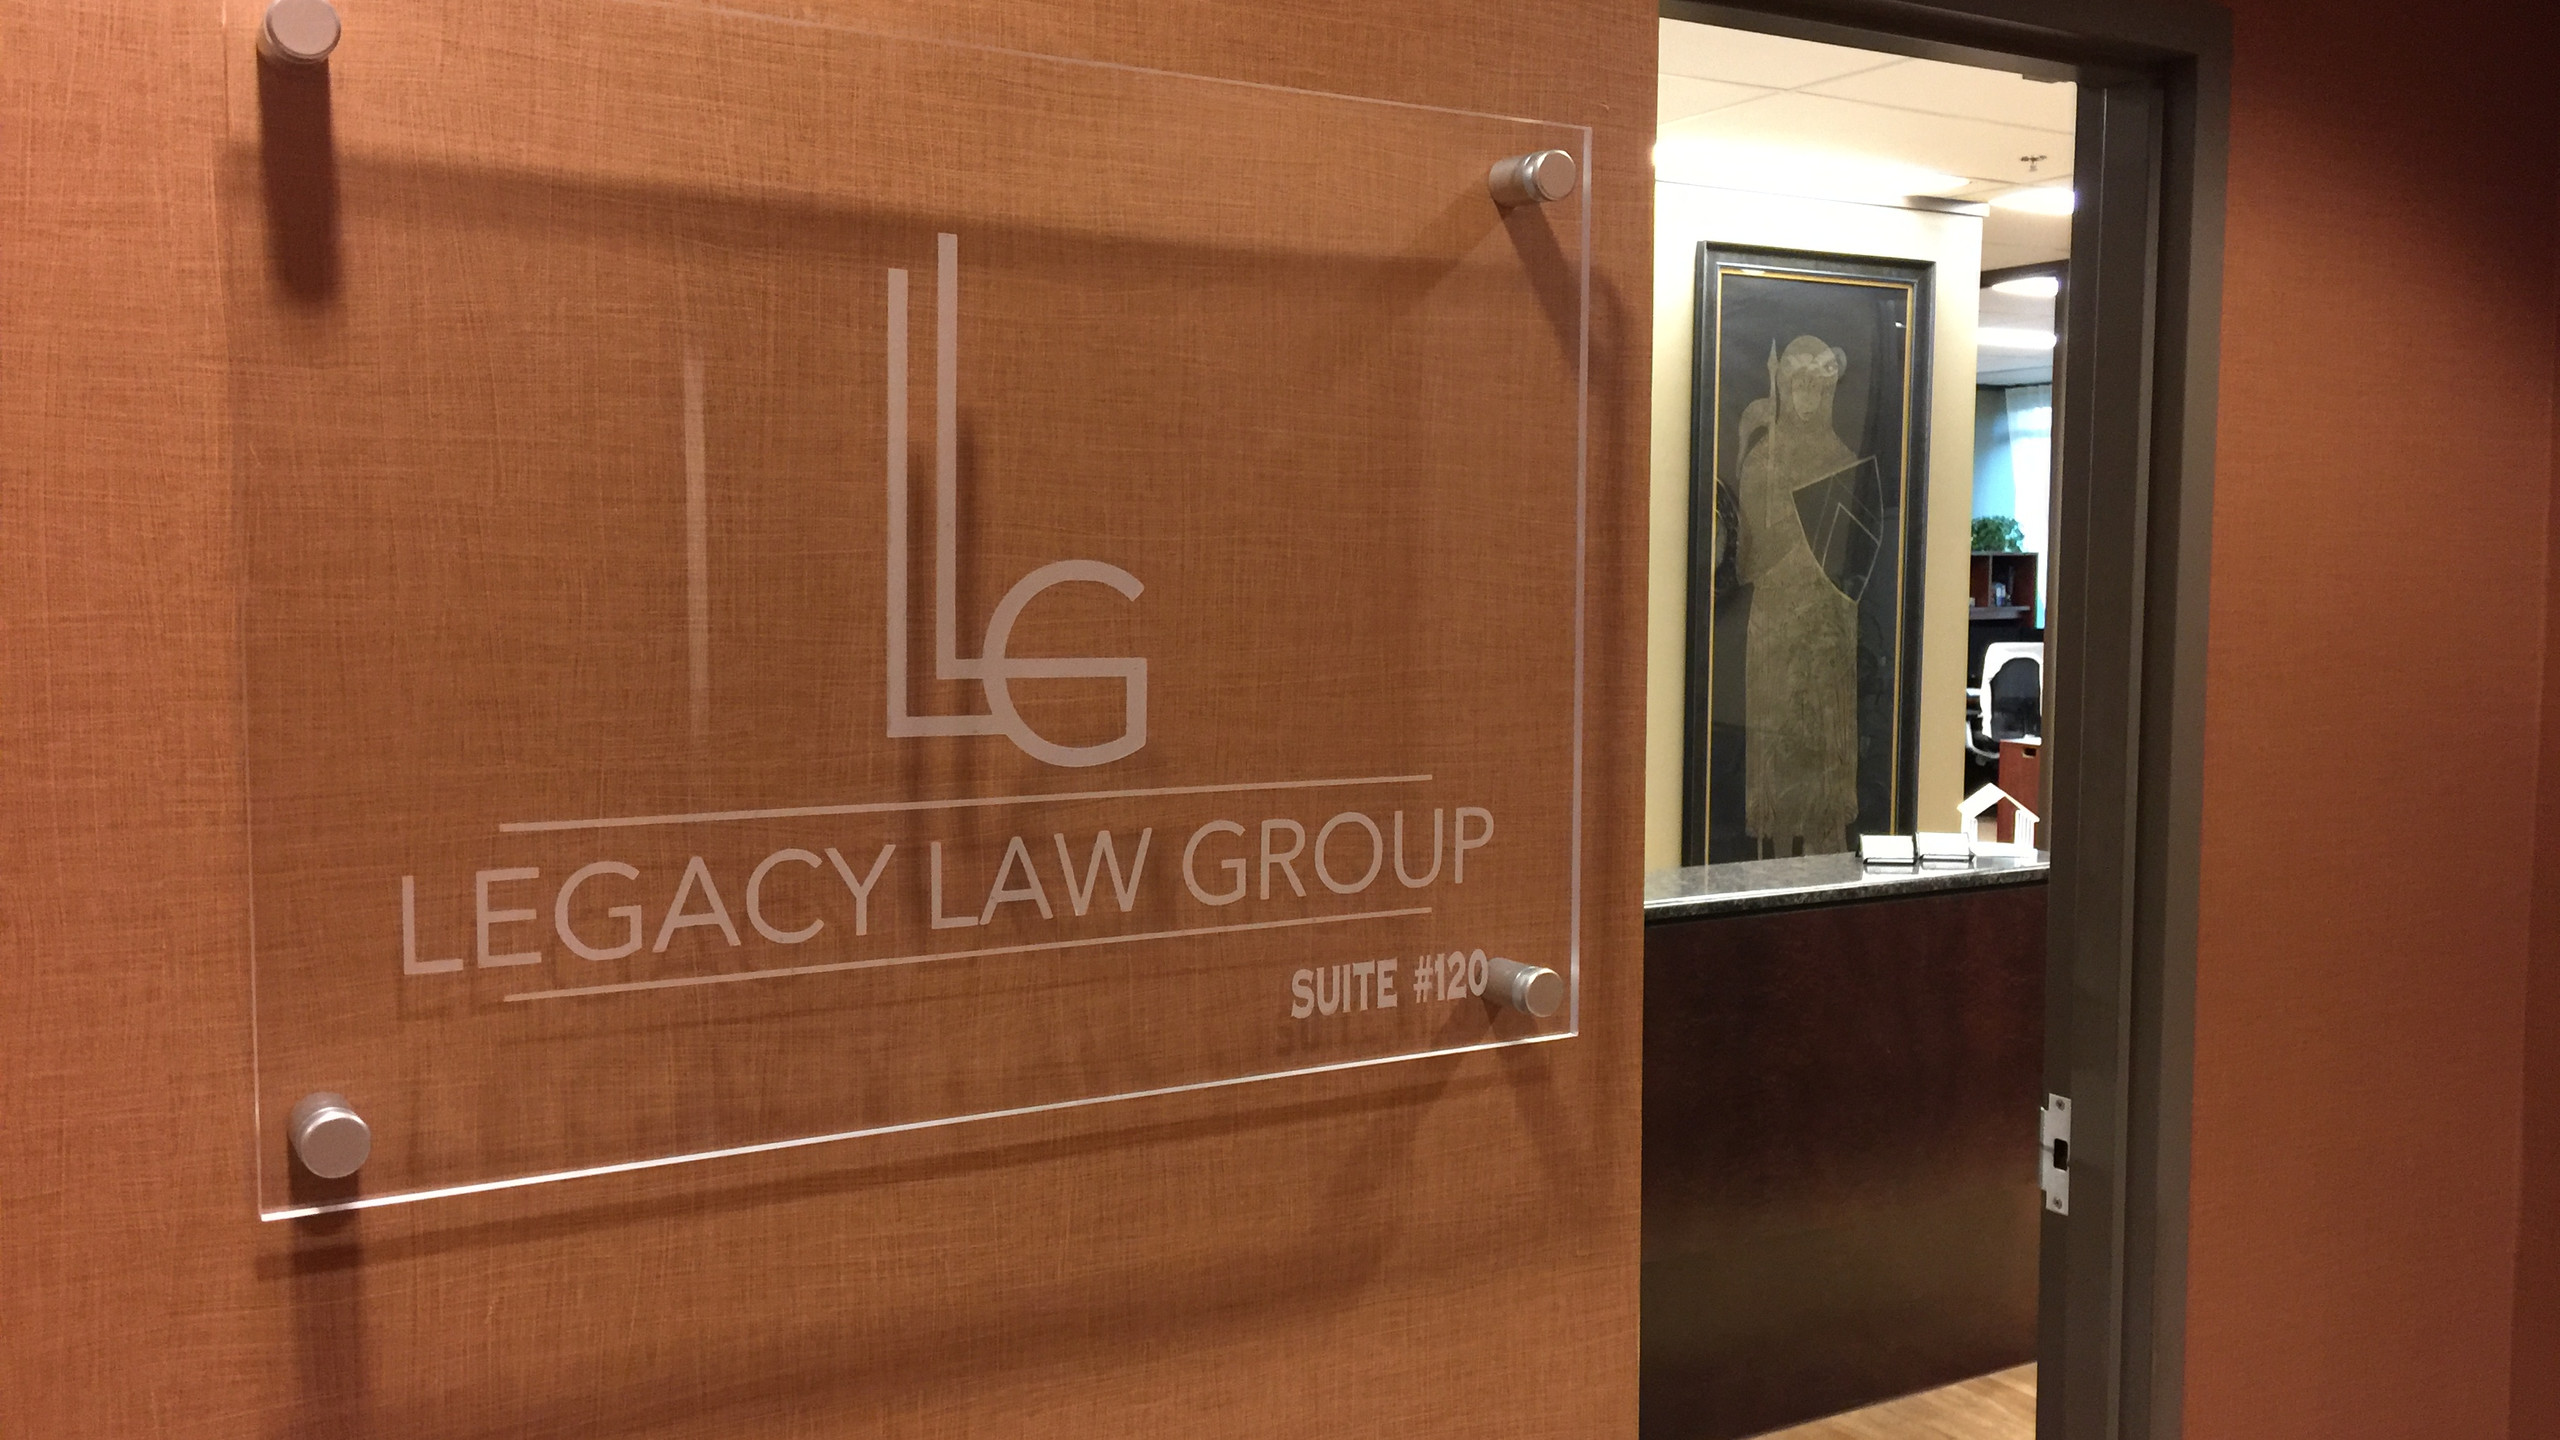 LEGACY LAW GROUP Office Entrance